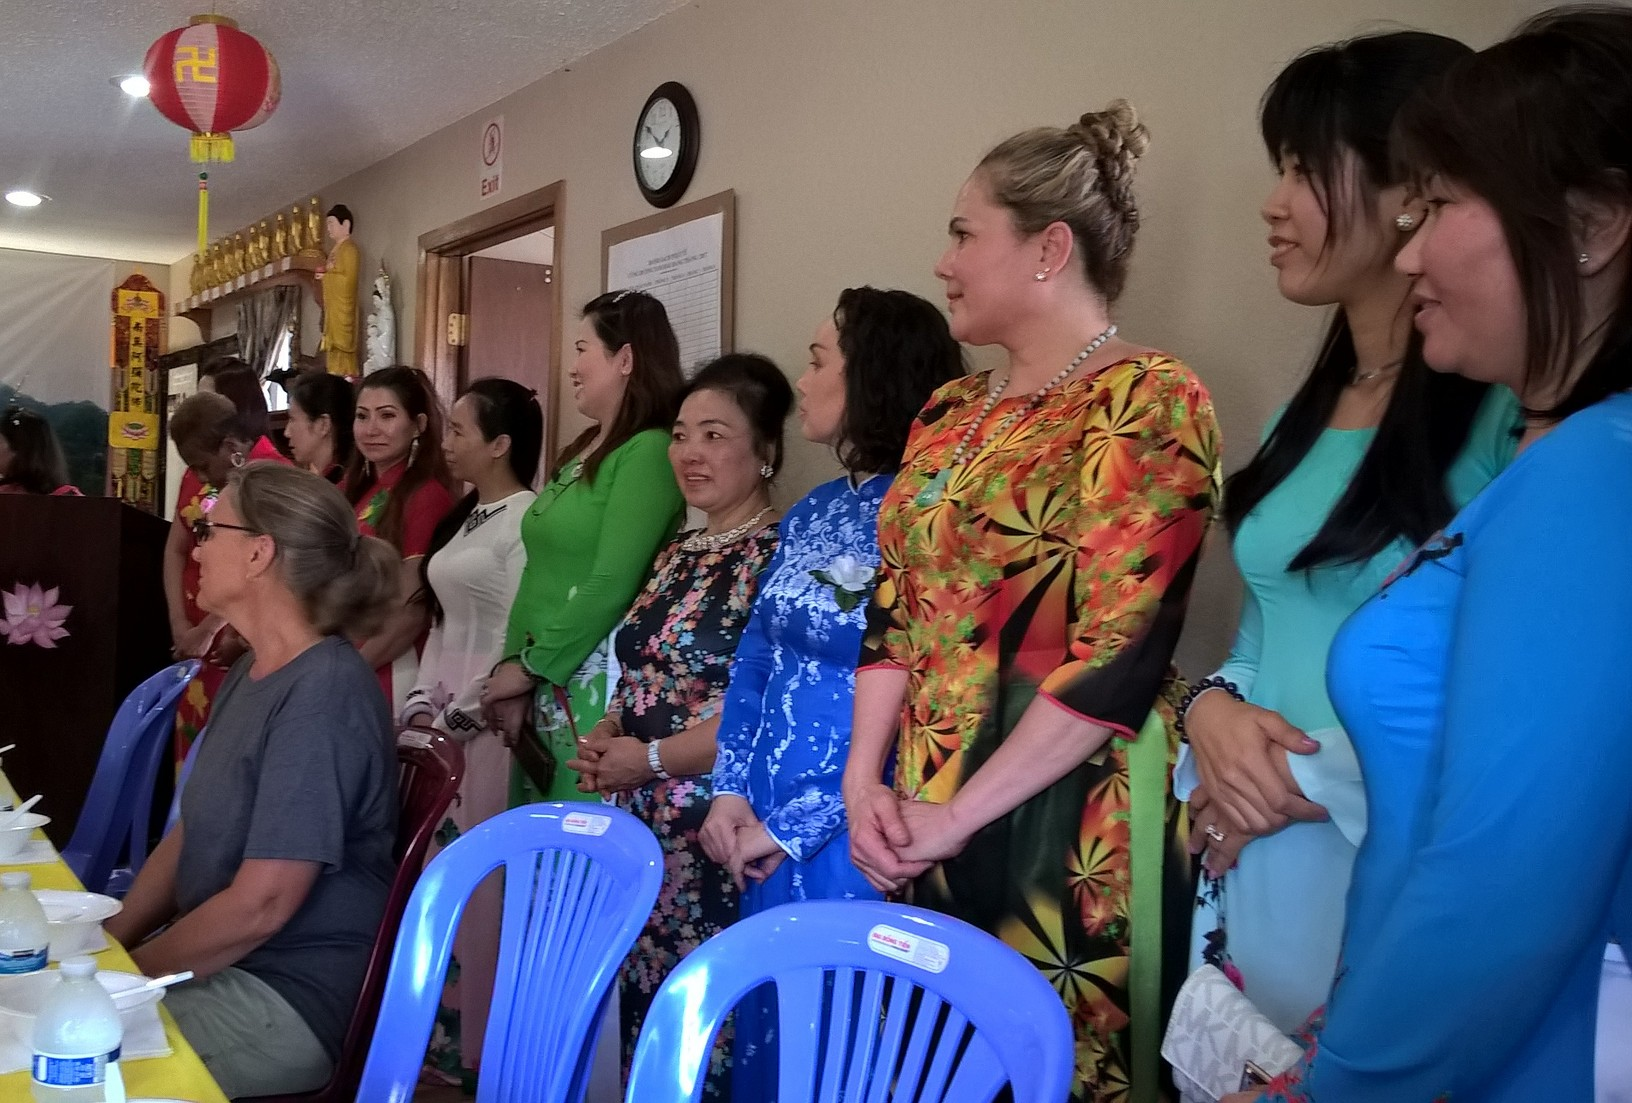 centerfield buddhist single women Browse photo profiles & contact who are buddhist, religion on australia's #1 singles site rsvp free to browse & join.